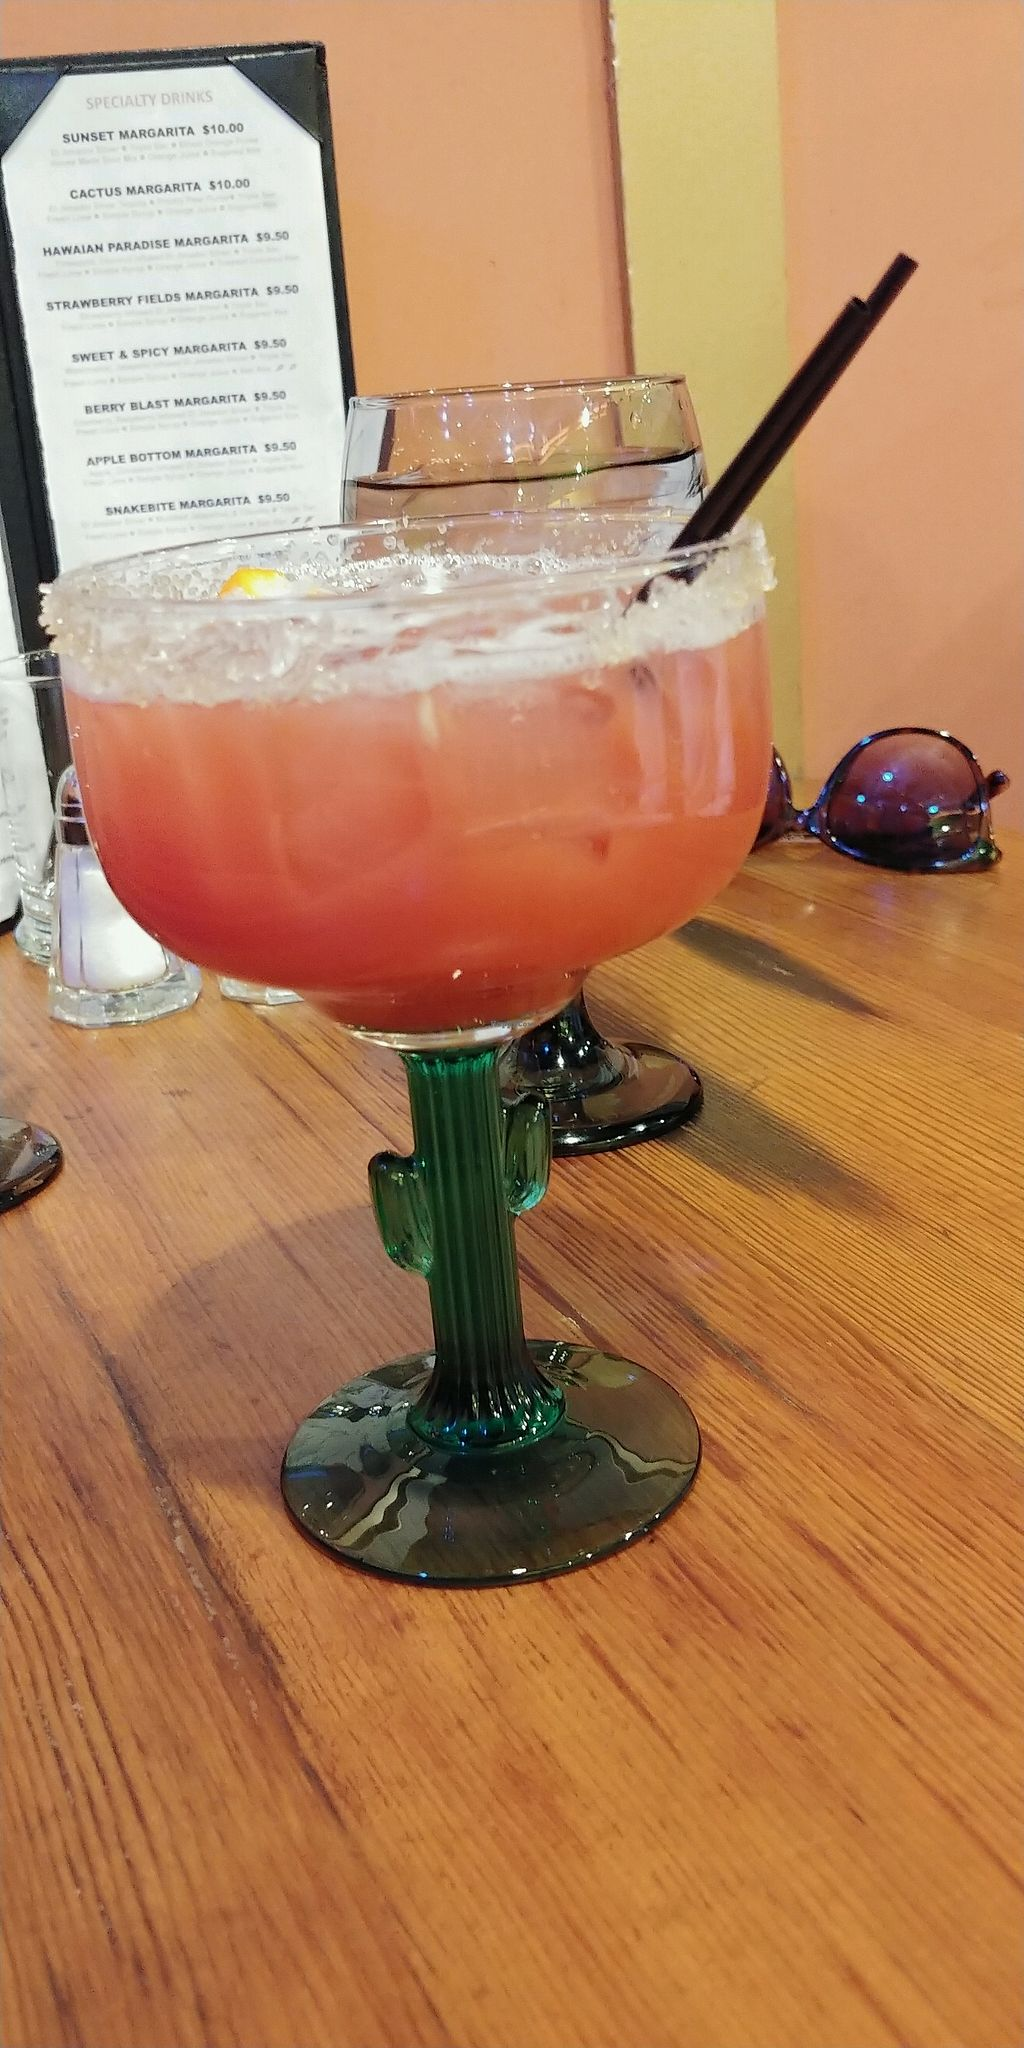 """Photo of Bueno Loco Restaurante  by <a href=""""/members/profile/pritchstan"""">pritchstan</a> <br/>Sunset margarita <br/> February 3, 2018  - <a href='/contact/abuse/image/43769/354619'>Report</a>"""